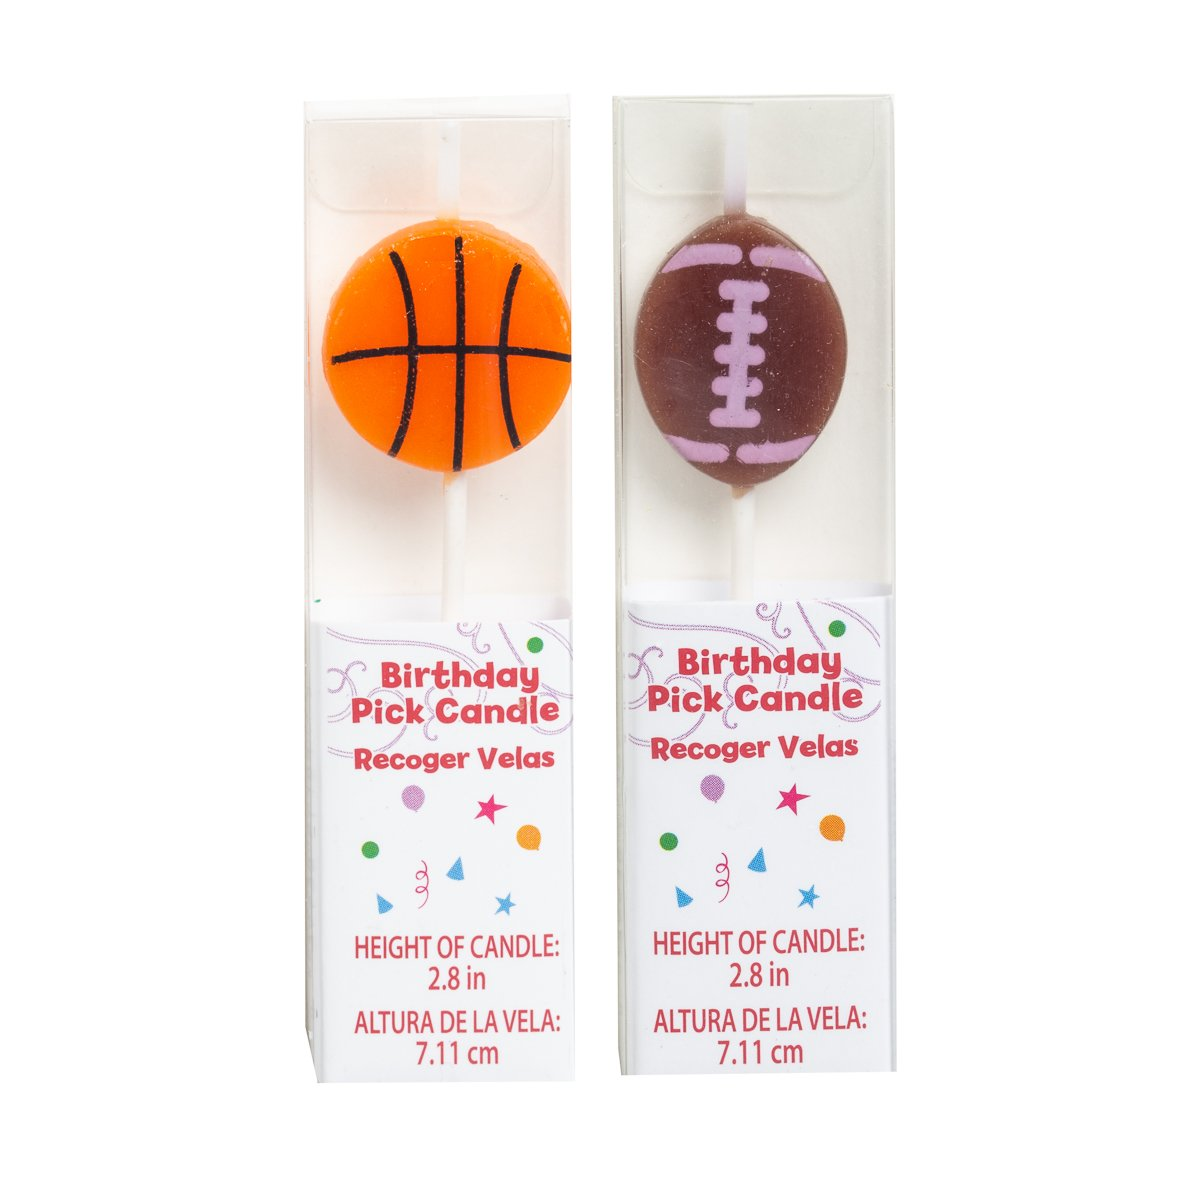 Football and Basketball Birthday Candles Bulk Party Supplies Cake Topper Shapes Letters Sports Cupcake Candles for Kids Adults 67 Dept 12 Pack